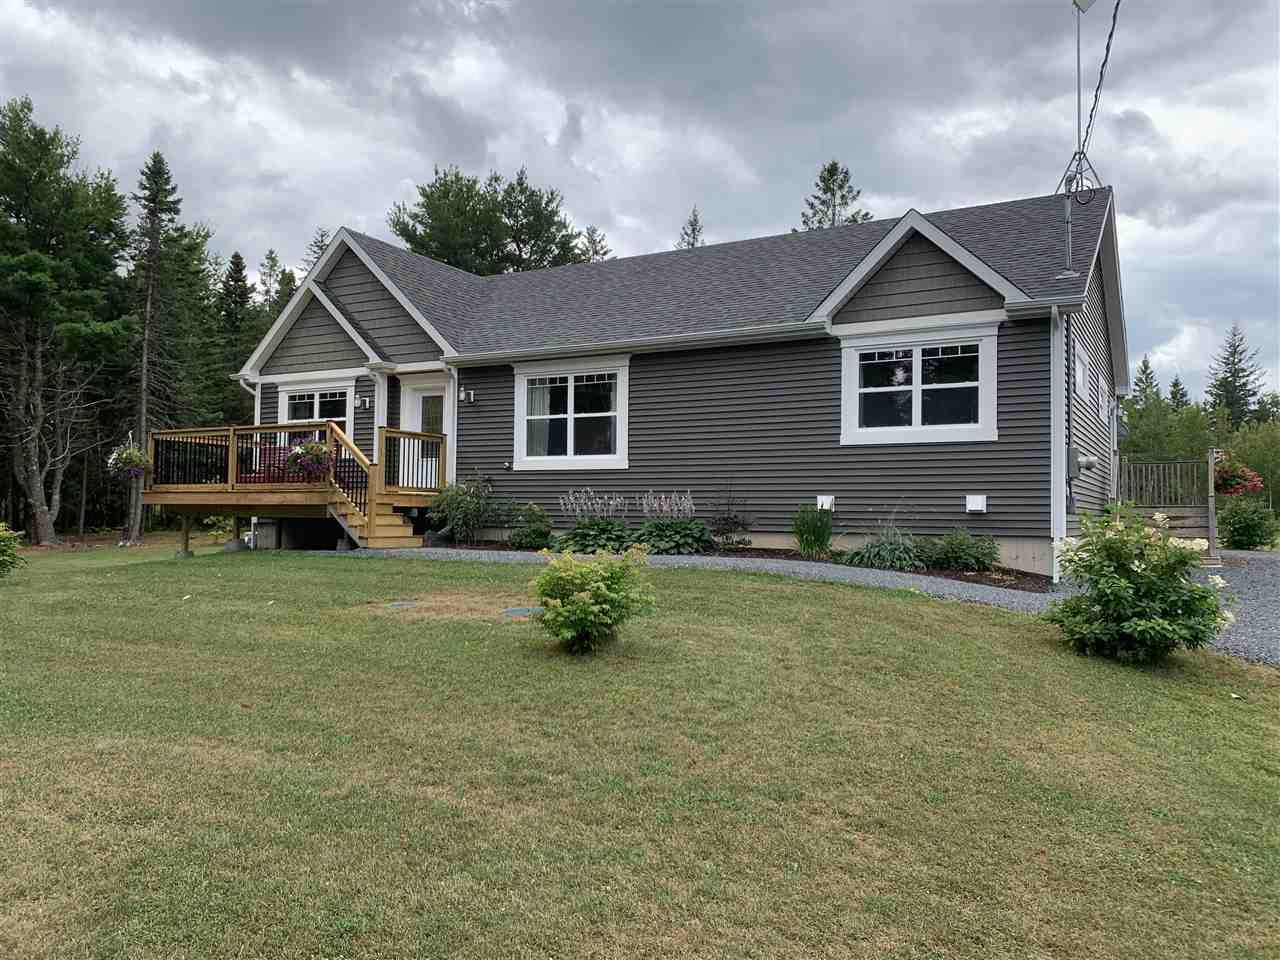 Main Photo: 78 E Fraser Road in Rocklin: 108-Rural Pictou County Residential for sale (Northern Region)  : MLS®# 202016186